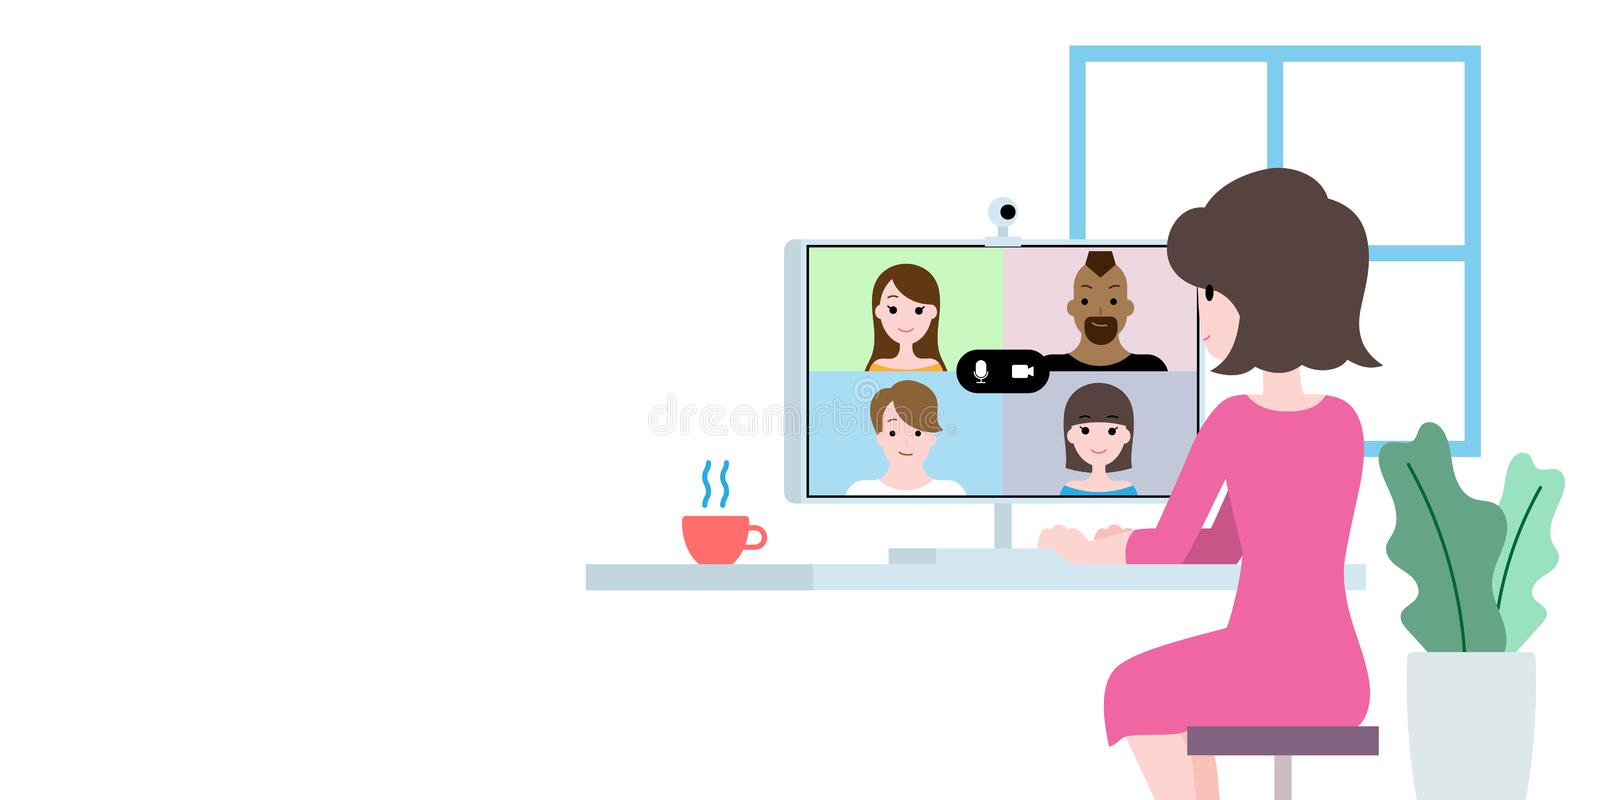 Work from home illustration, video call group conference online communication. Work from home illustration vector, video call group conference online vector illustration